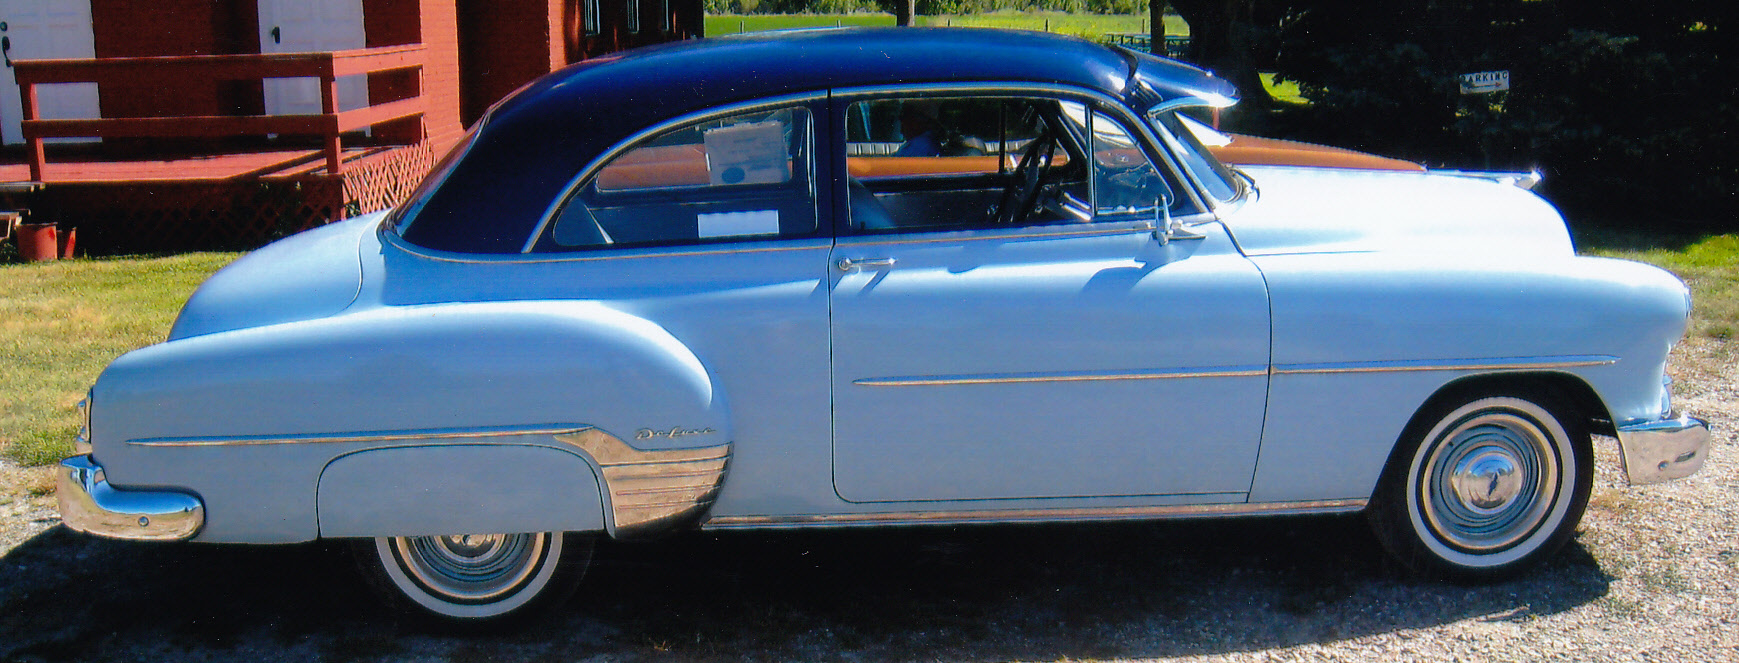 1952 Chevrolet 2 Door Sedan_NEW